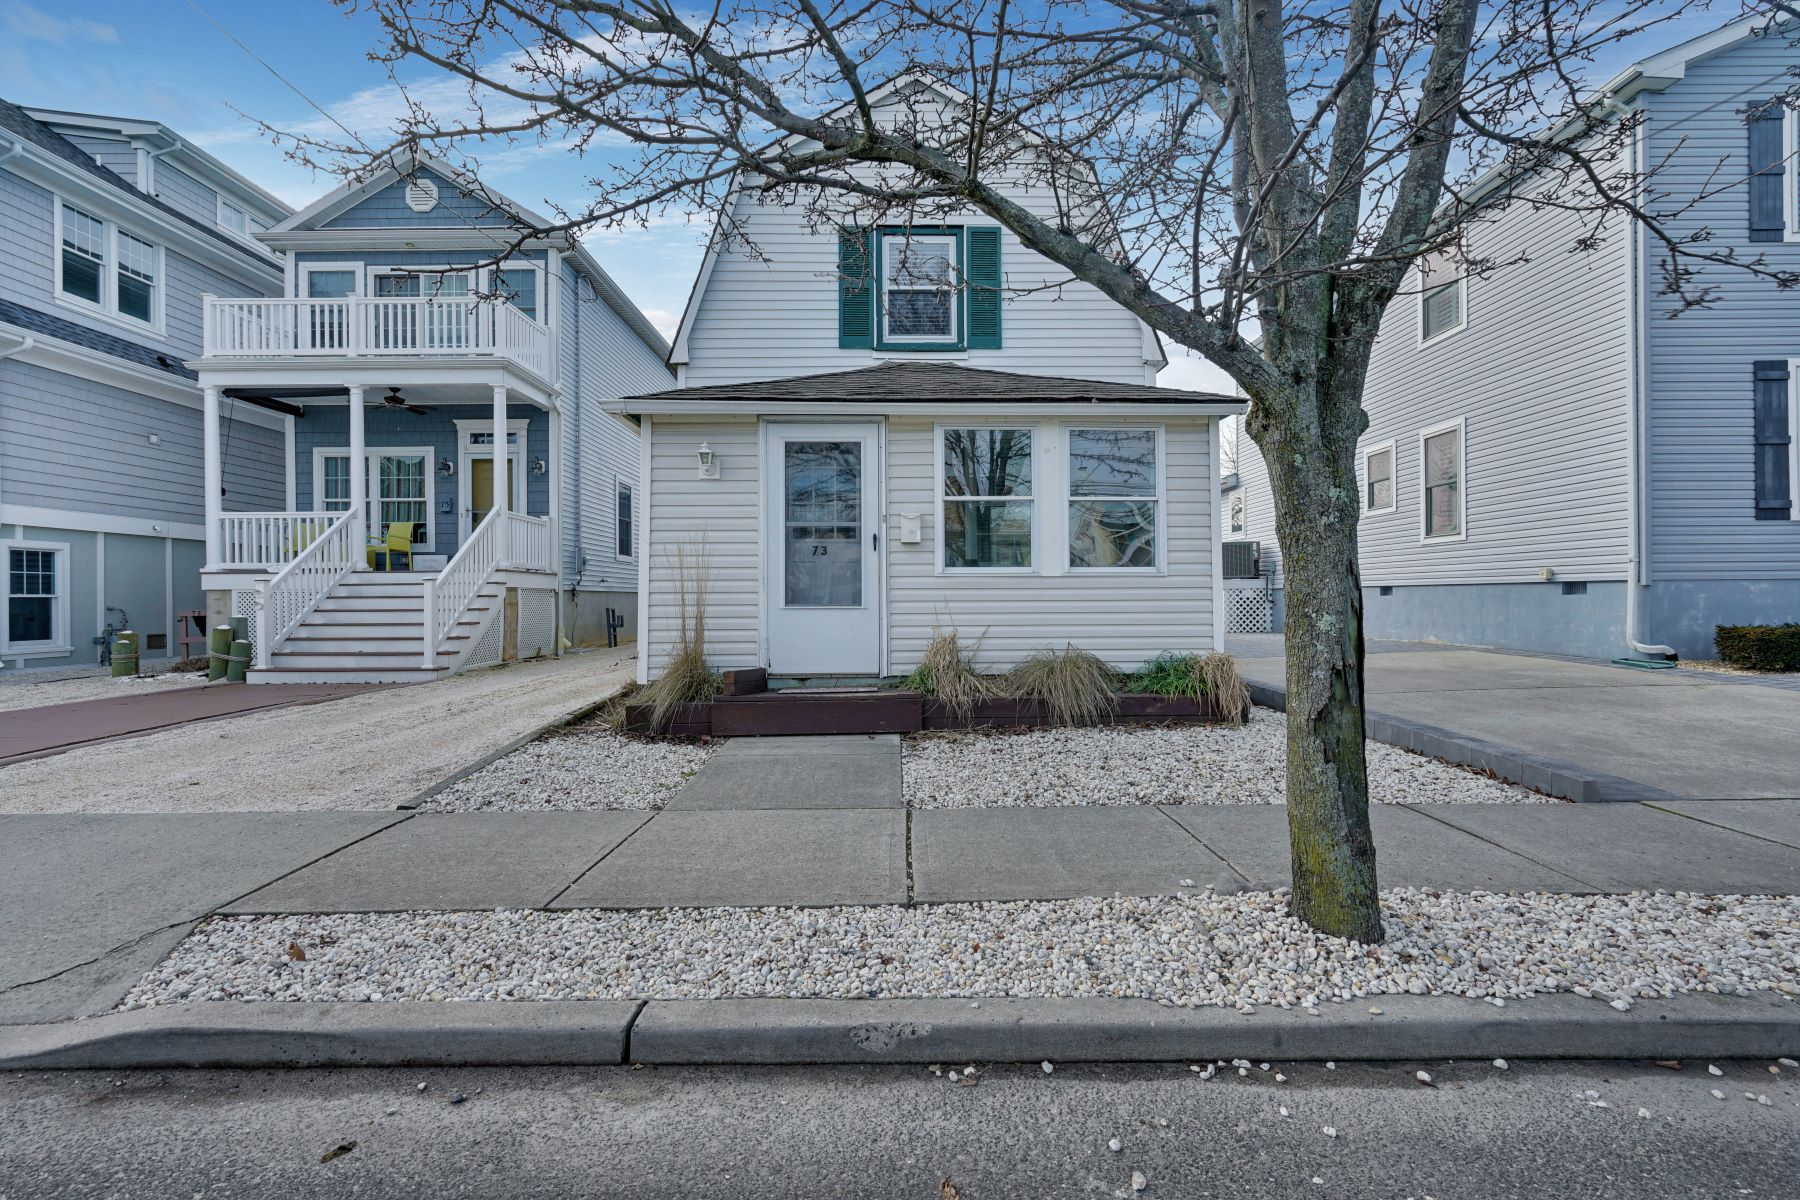 Single Family Homes for Sale at Well Maintained Bungalow 73 Ocean Avenue, Manasquan, New Jersey 08736 United States